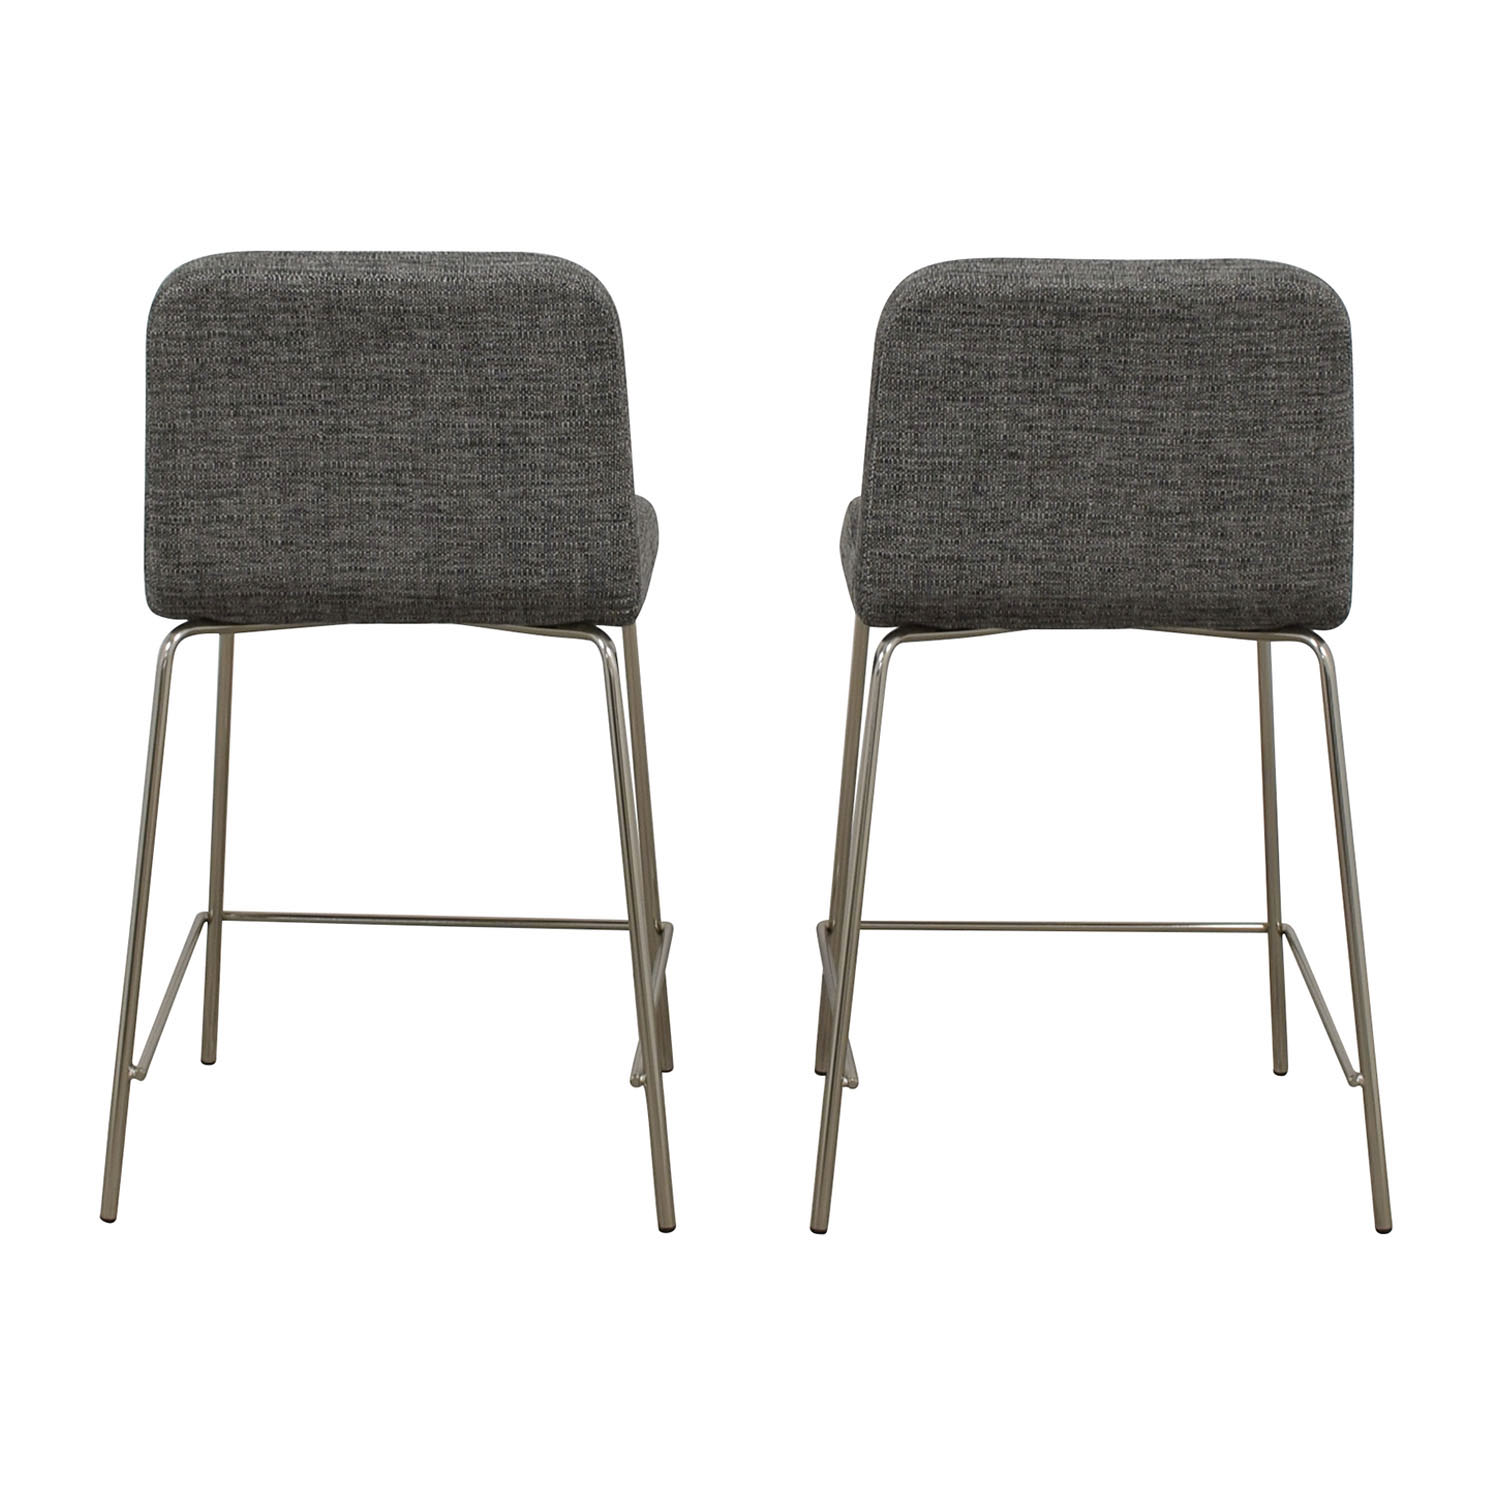 CB2 CB2 Charlie Counter Gray Stools nj